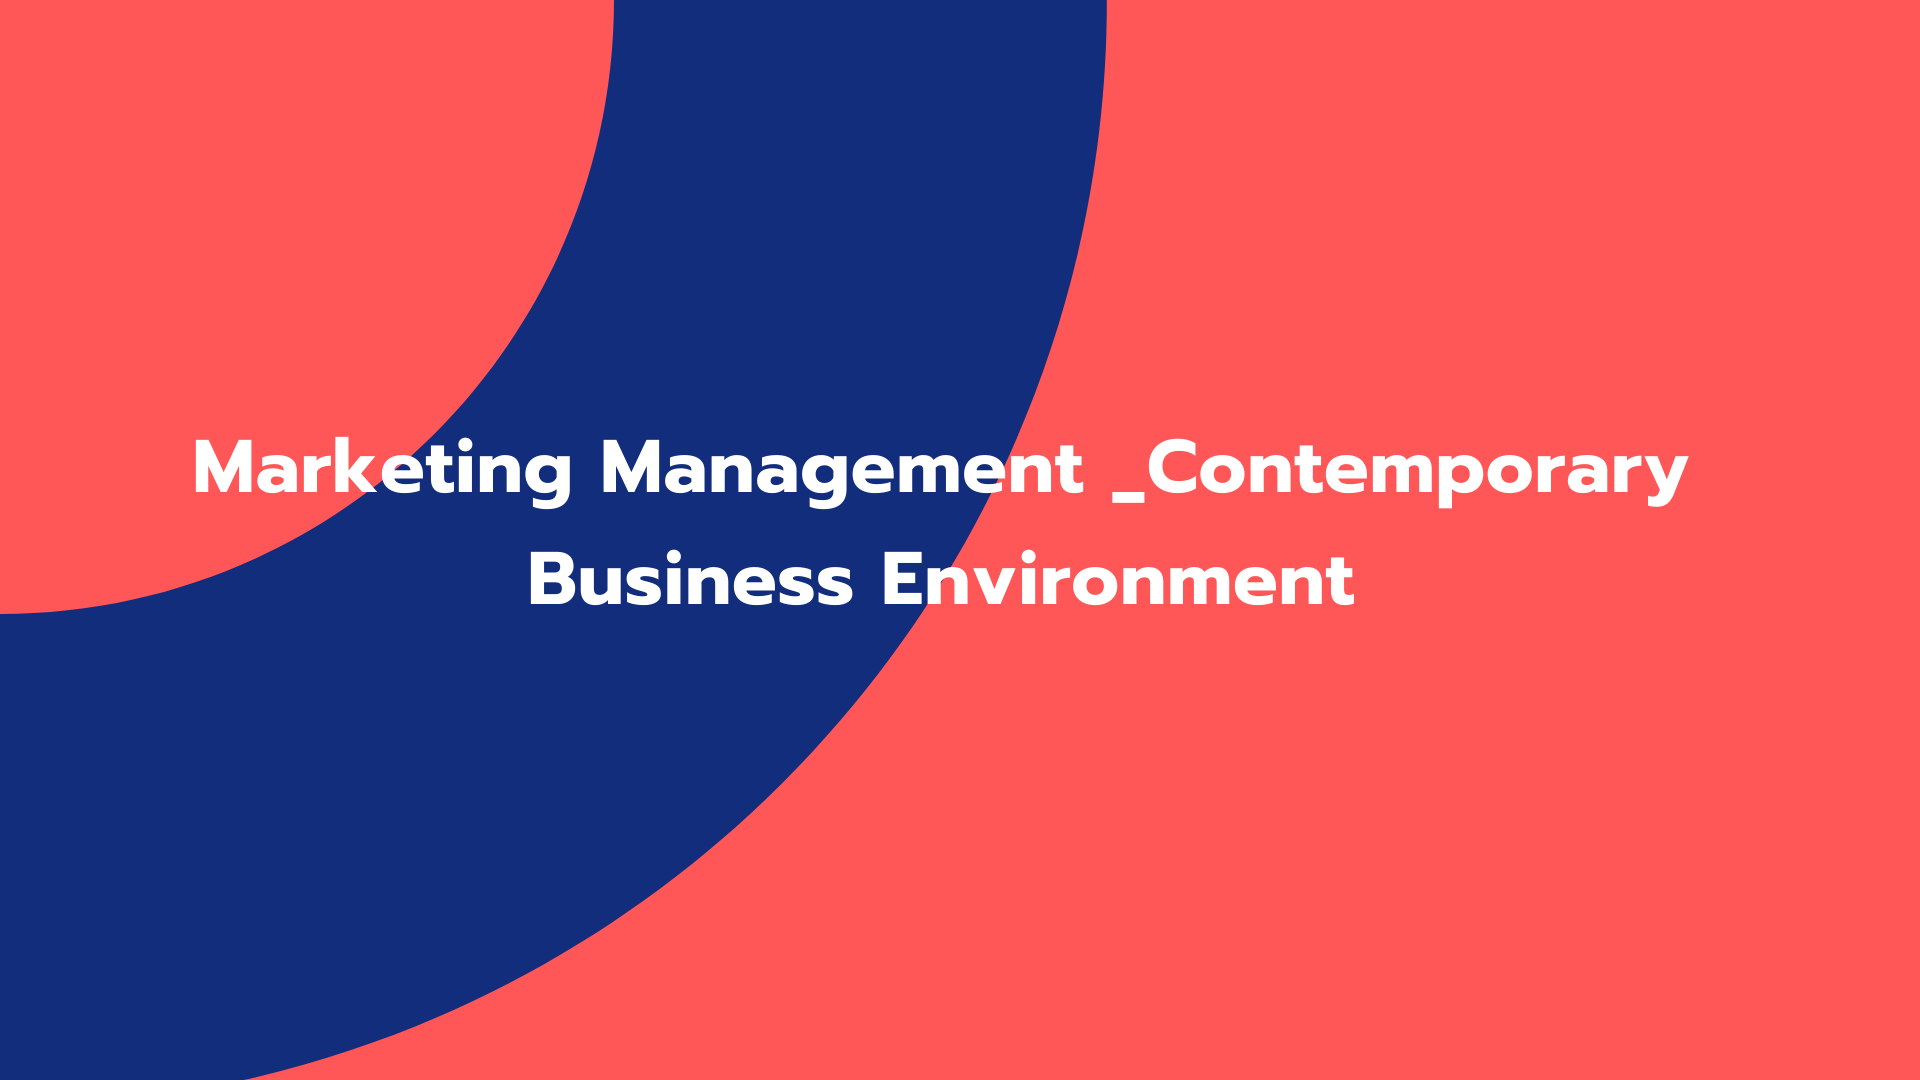 Marketing Management _Contemporary Business Environment